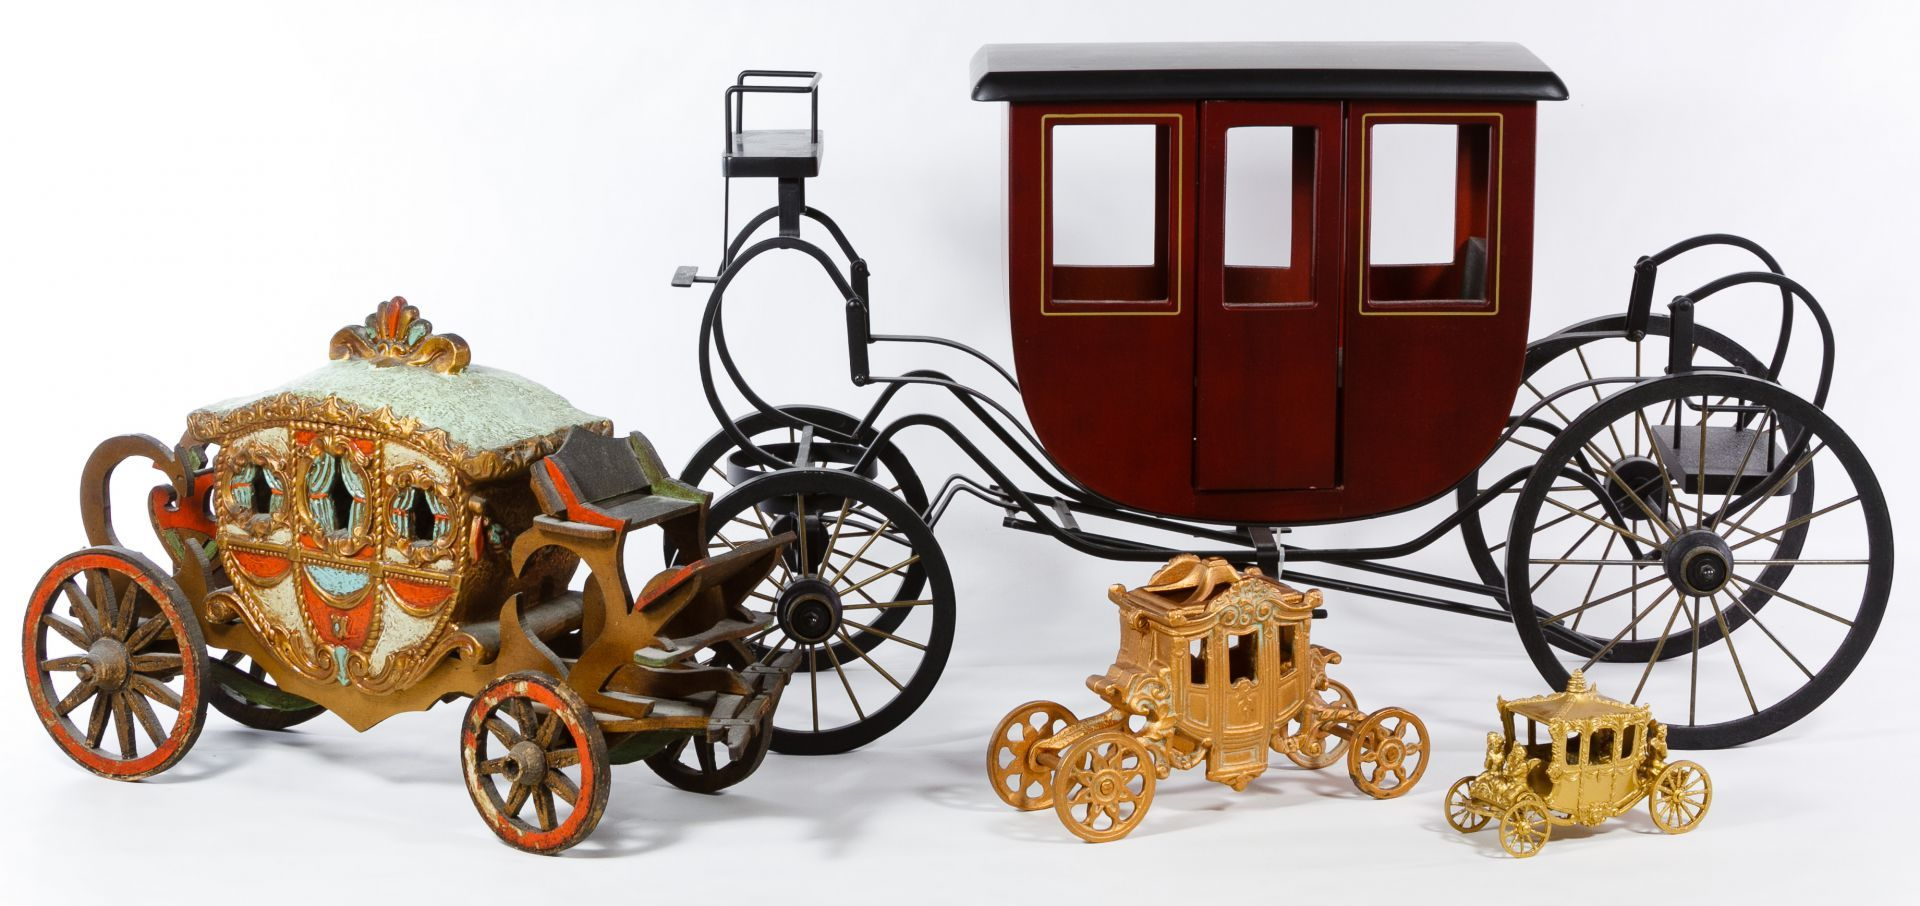 Lot 683: Toy Carriage Assortment; Four carriages including two gold cast metal carriages, wood carriage and metal with wood carriage dated 2001 from Byers Choice